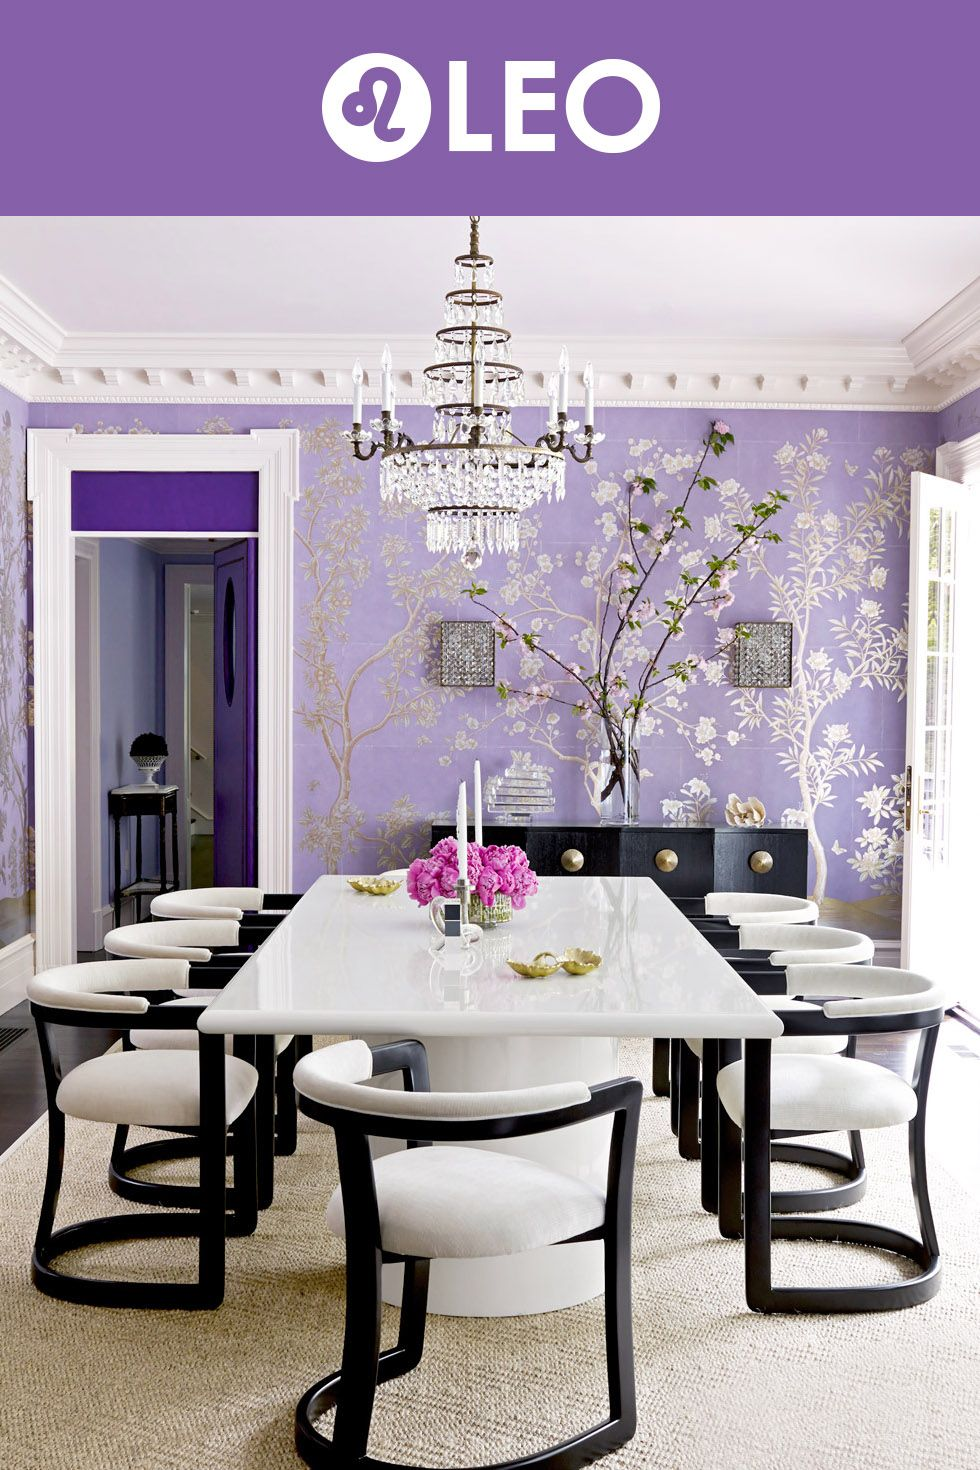 The Best Paint Colors For Your Zodiac Sign - Astrological Decor